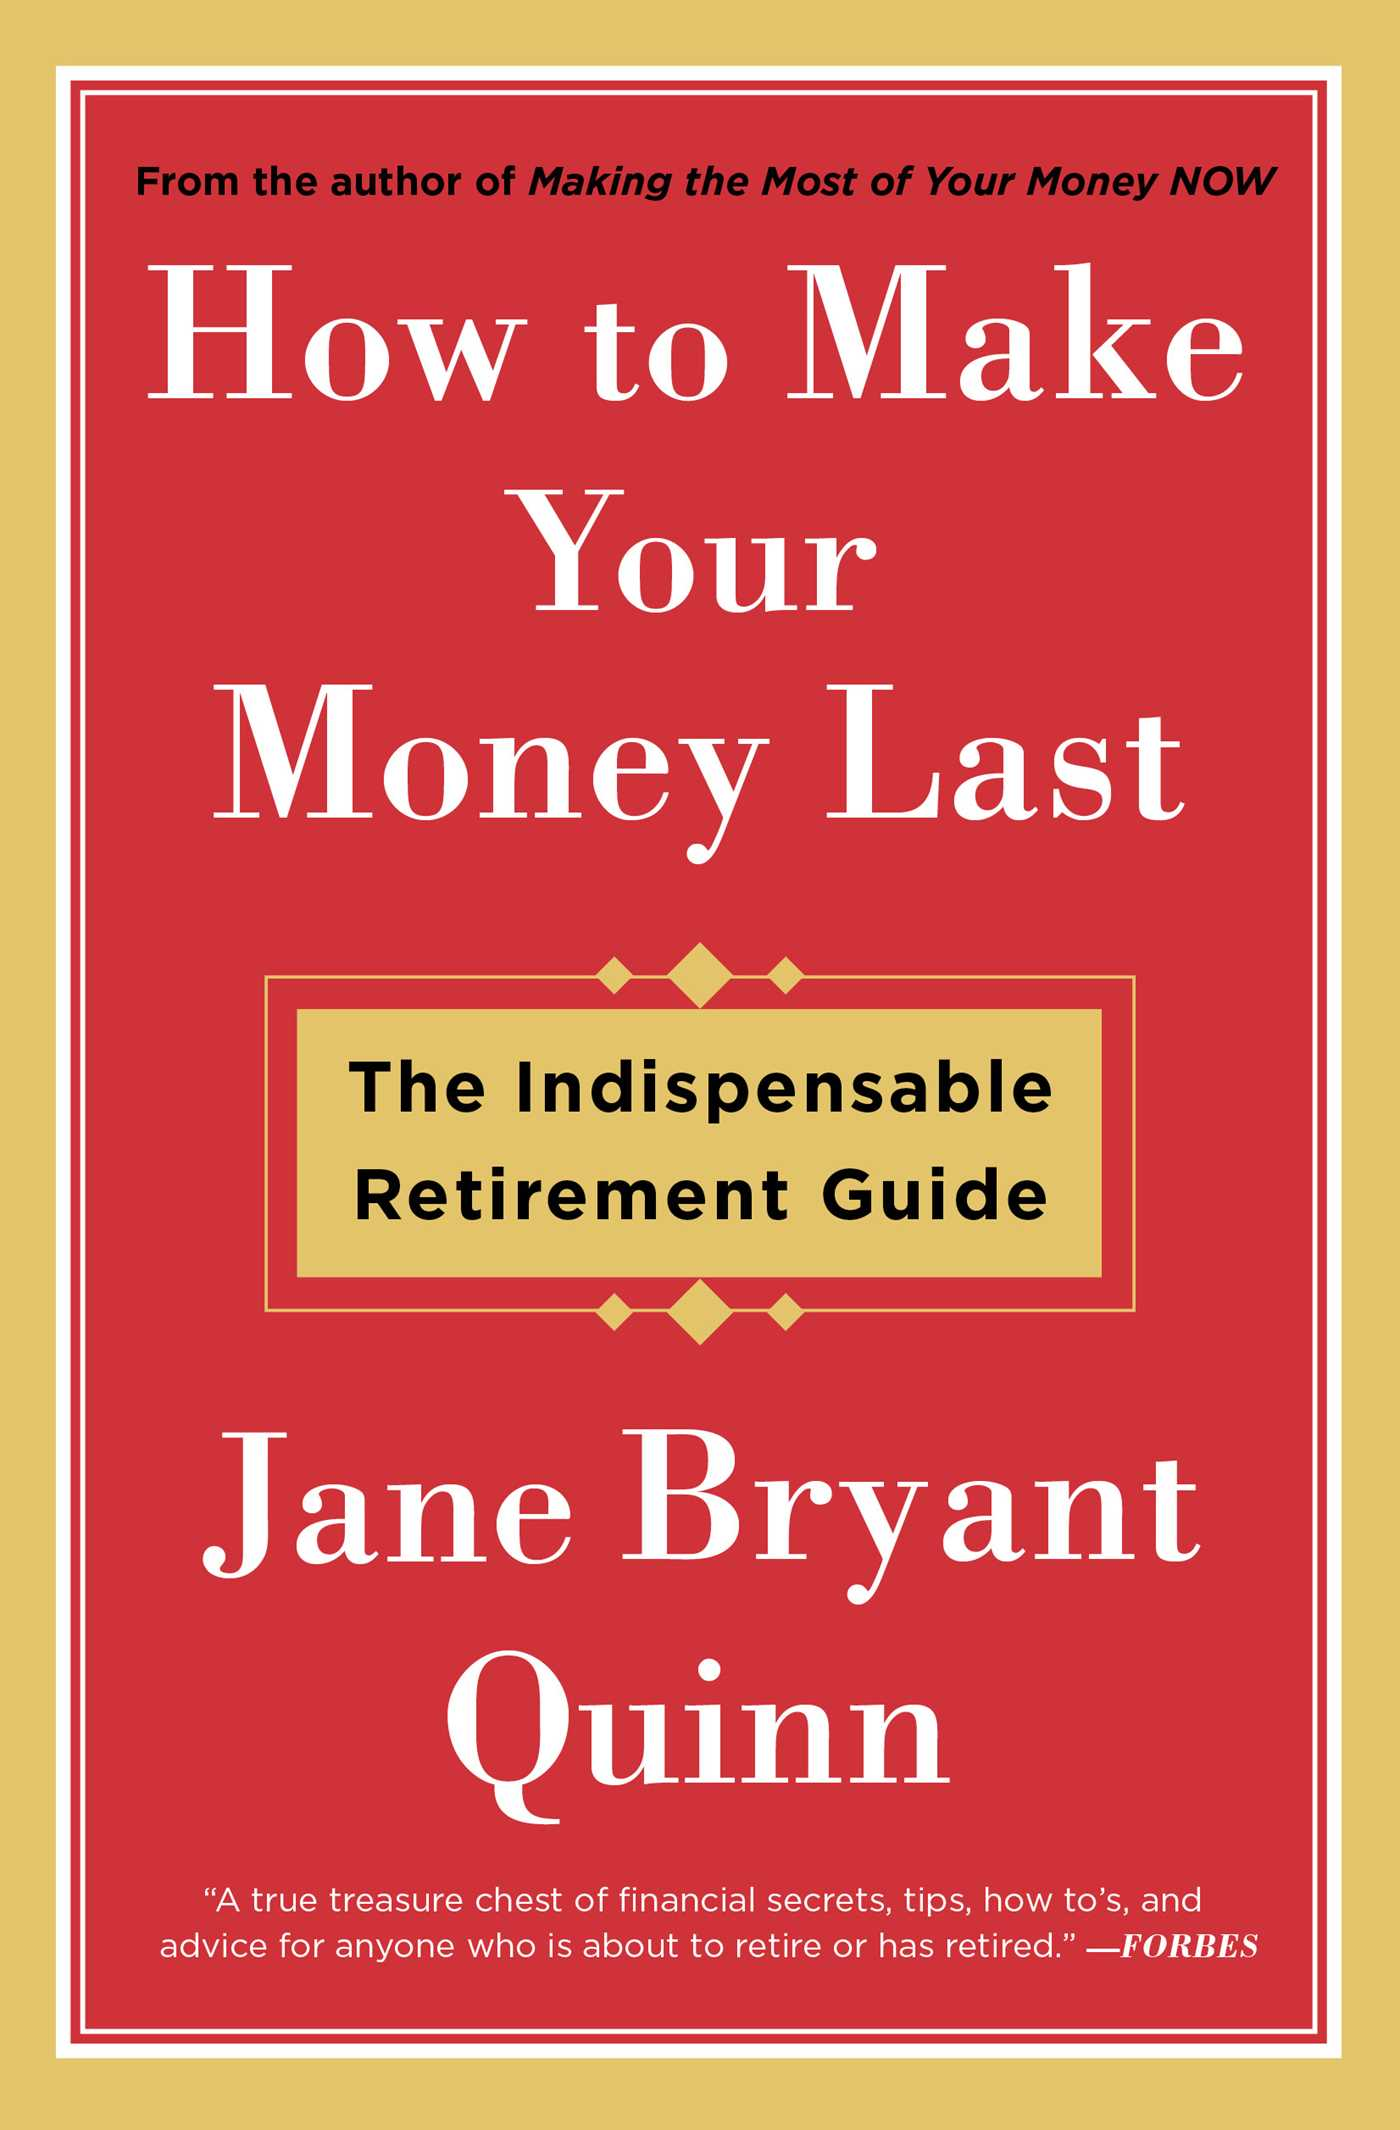 How to make your money last 9781476743776 hr